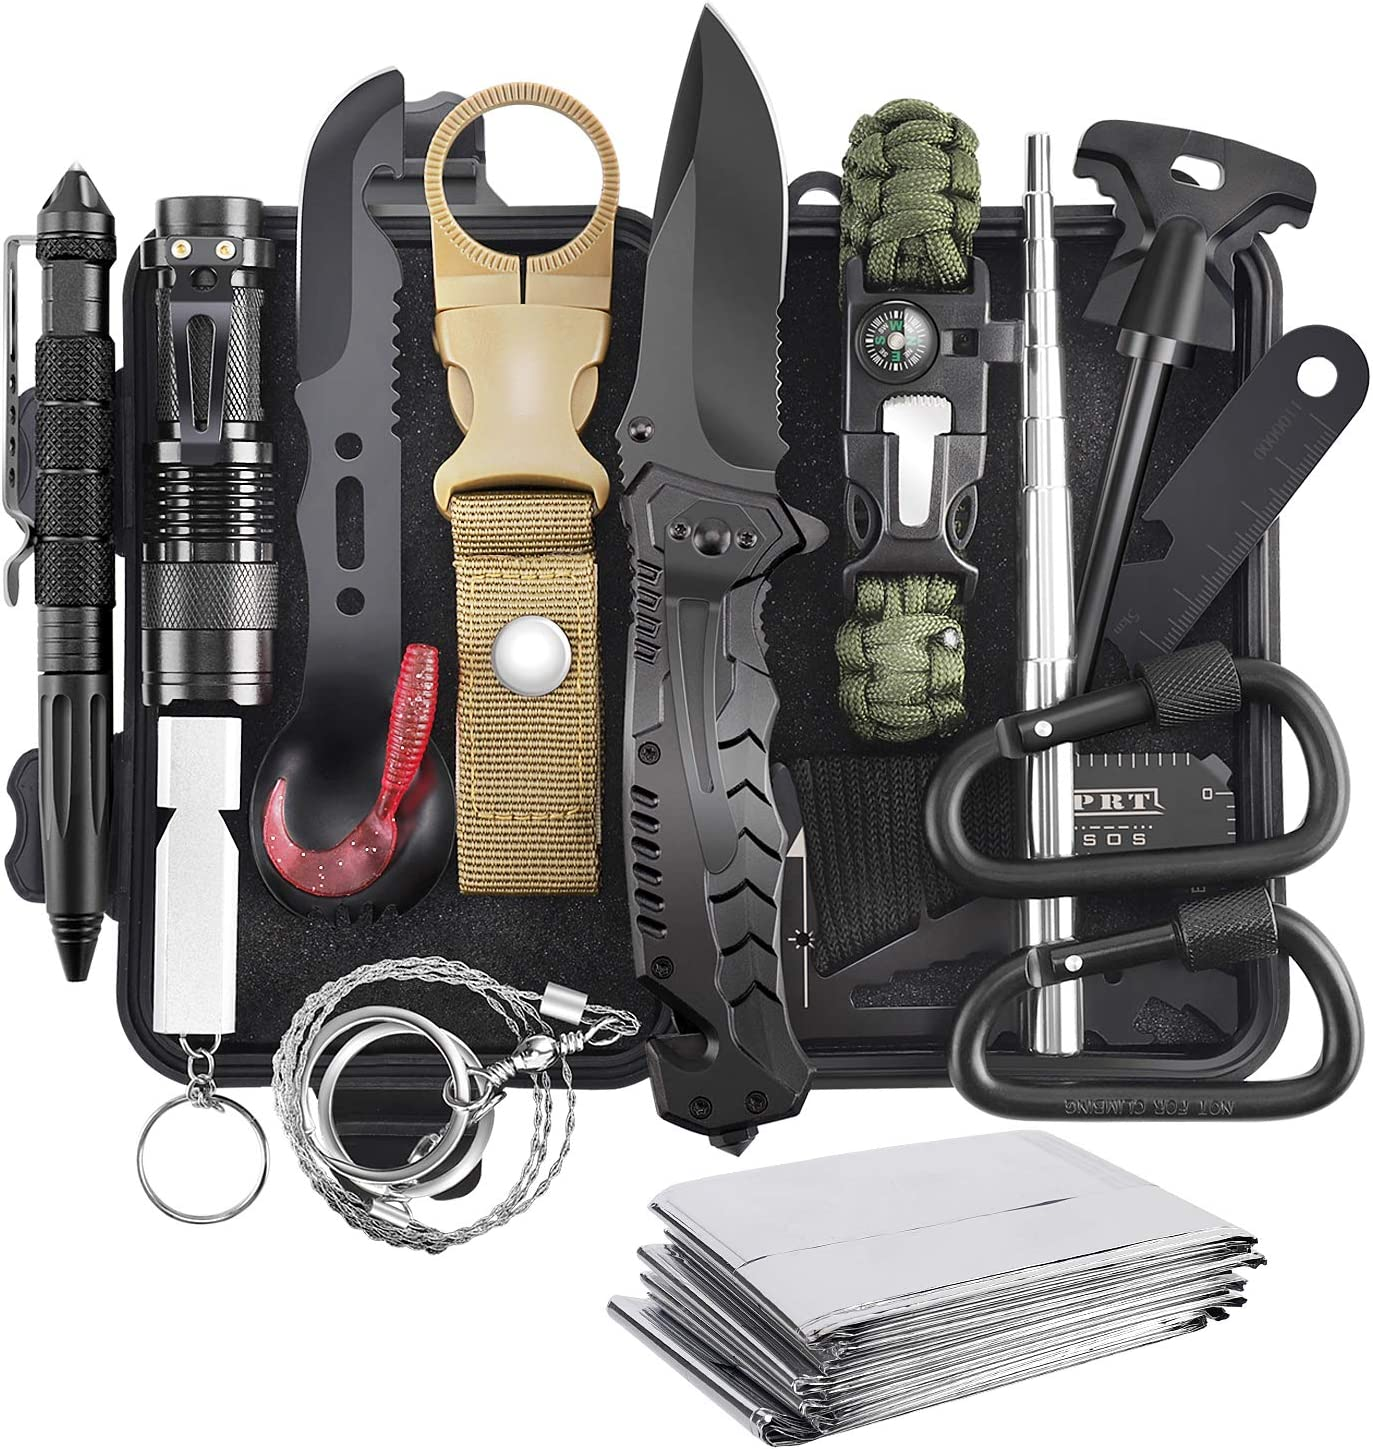 Amazon.com: Survival Kit, 16 in 1 Professional Survival Gear Tool Emergency  Tactical First Aid Equipment Supplies Kits Gifts Idear for Men Him Women  Families Hiking Camping Fishing Adventures: Sports & Outdoors